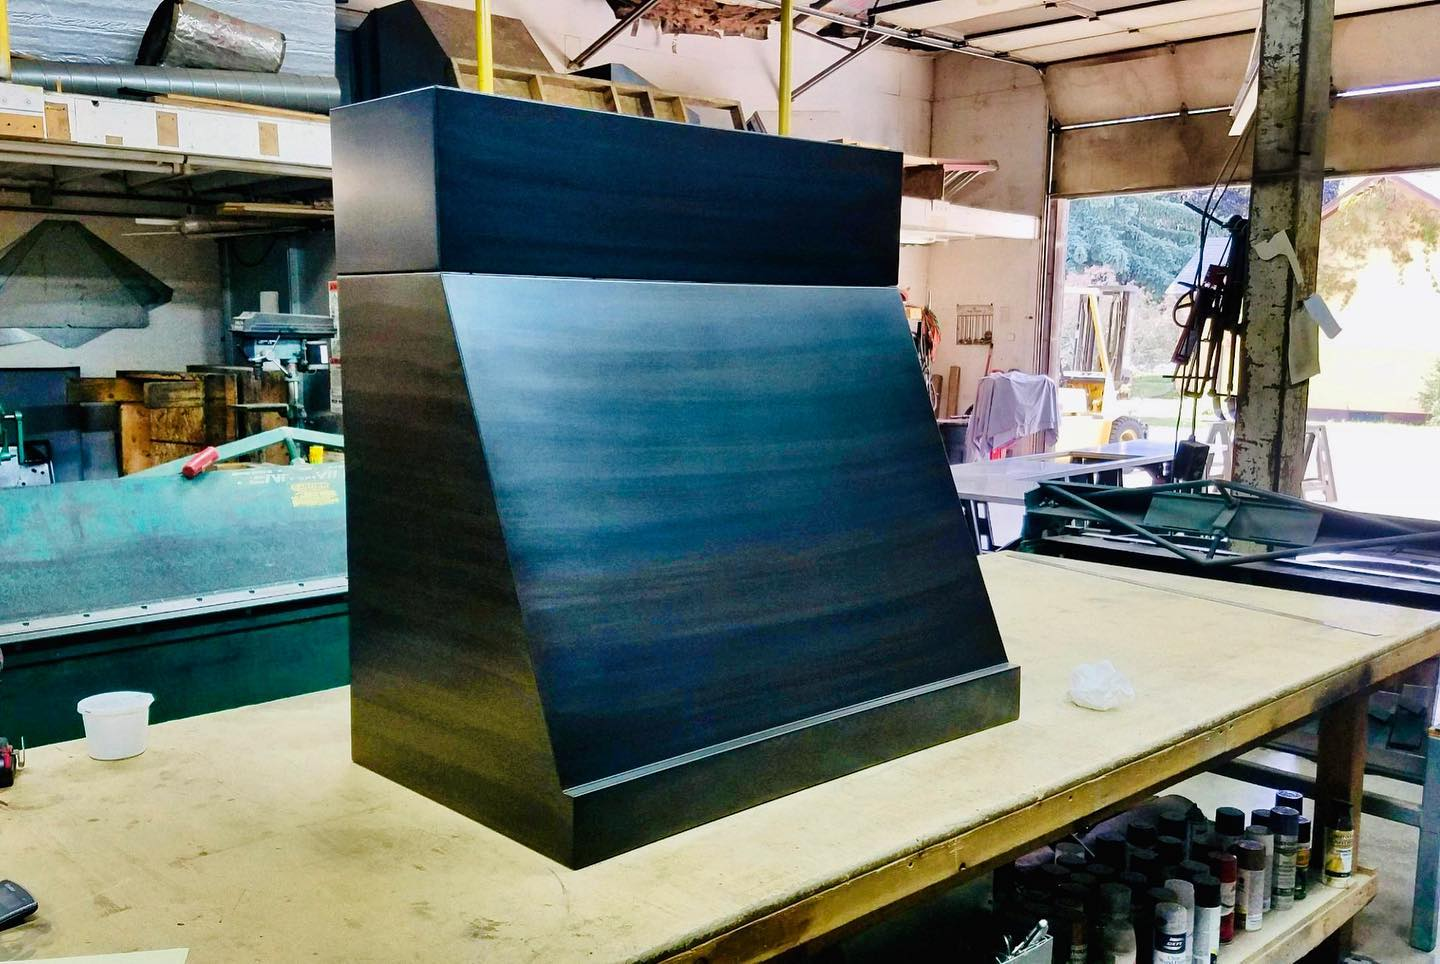 Look at this work of art. If I could cover all the surfaces in my house with steel I would (oh wait, I have done that!) this beauty is going into place on Monday! @cmtfabrication whitefish custom home builder